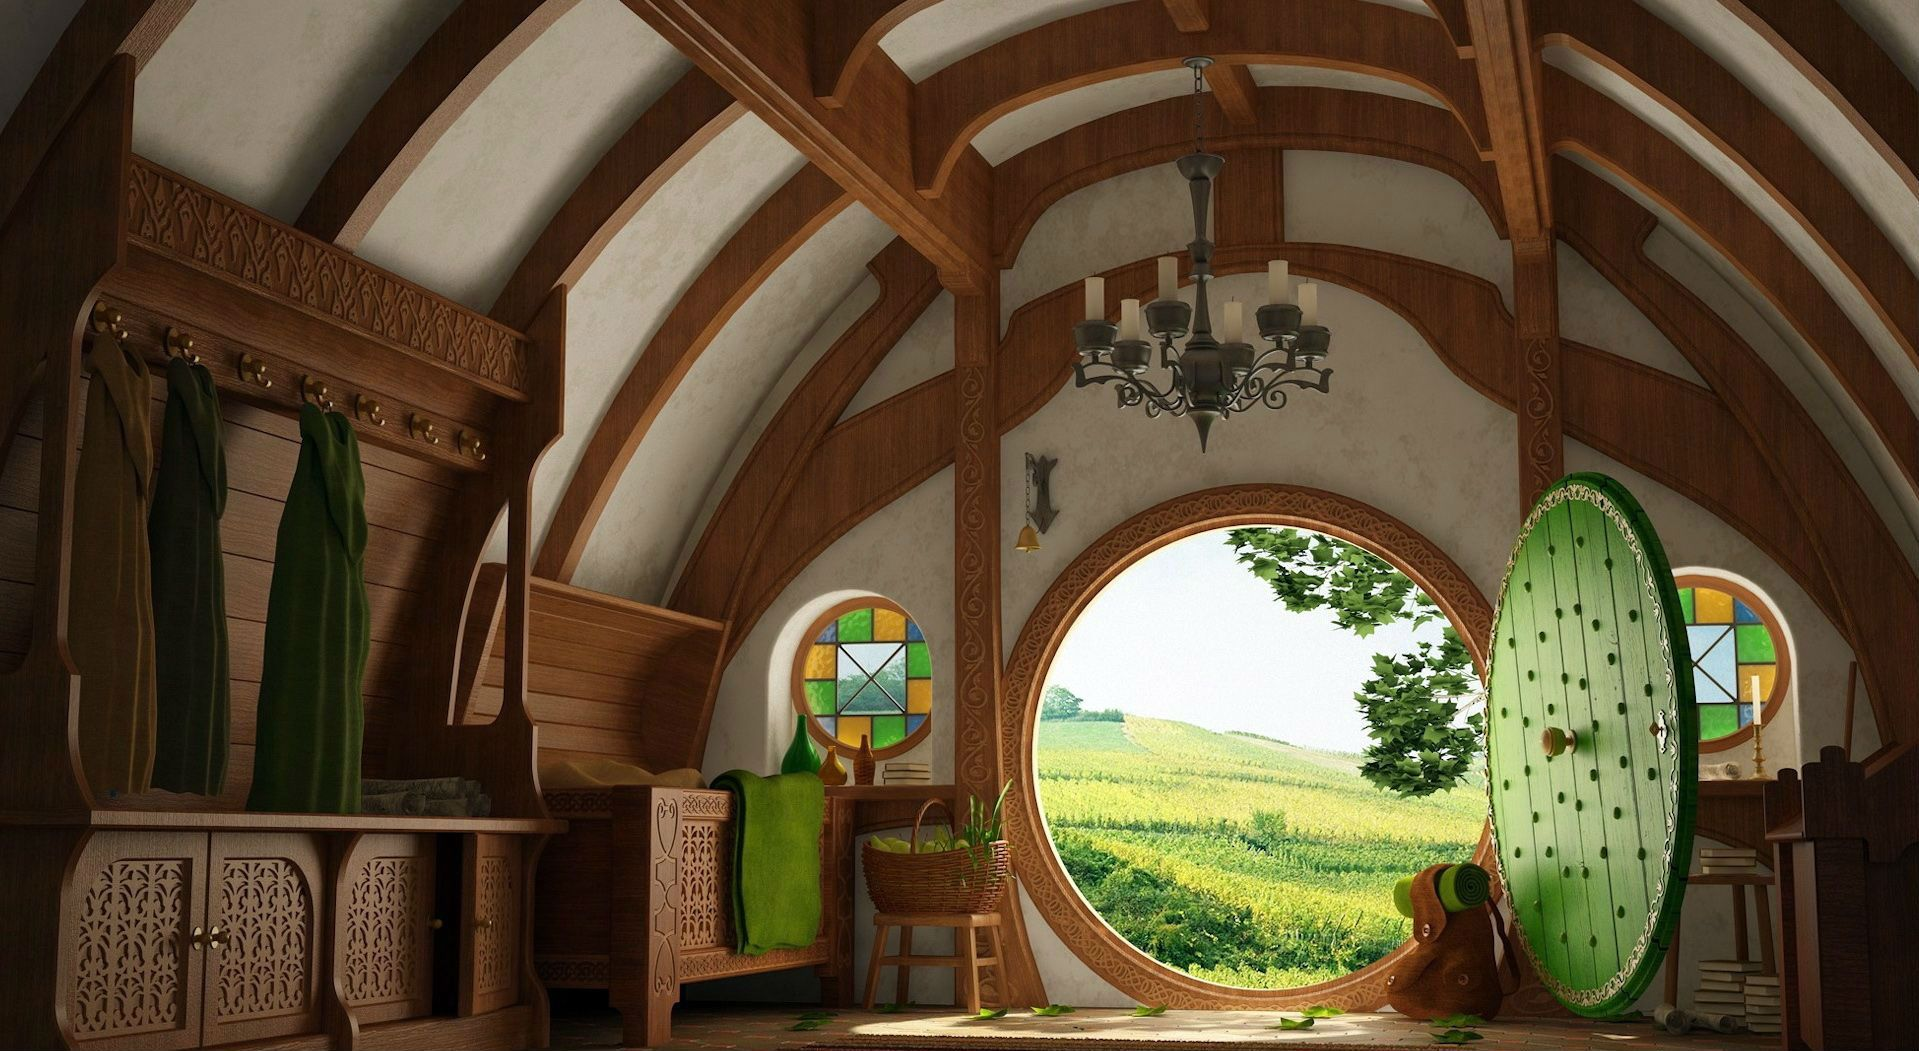 Hobbit House New Zealand | Home Design | Pinterest | Hobbit, House on ocean homes, europe homes, moon homes, rivendell homes, pokemon homes, avalon homes, chinese farm homes, camelot homes, canada homes, maryland homes, love homes, hippie homes, brazil homes, hobbiton homes, shire homes, harry potter homes, paris homes, china homes, lord of the rings homes, south africa homes,